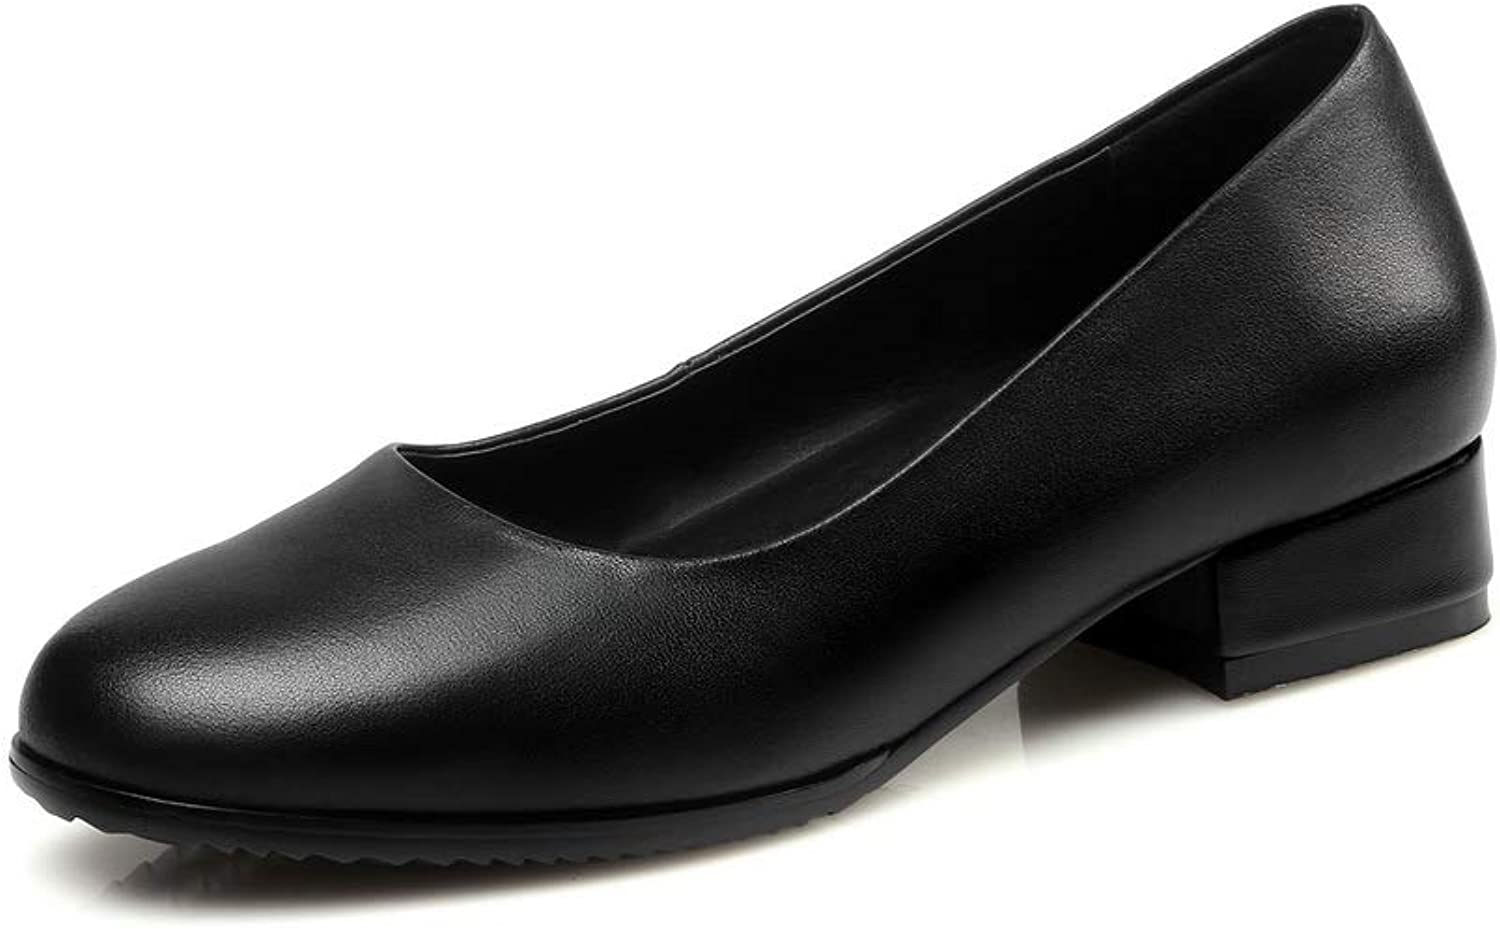 AdeeSu Womens Structured Solid Business Urethane Pumps shoes SDC06166